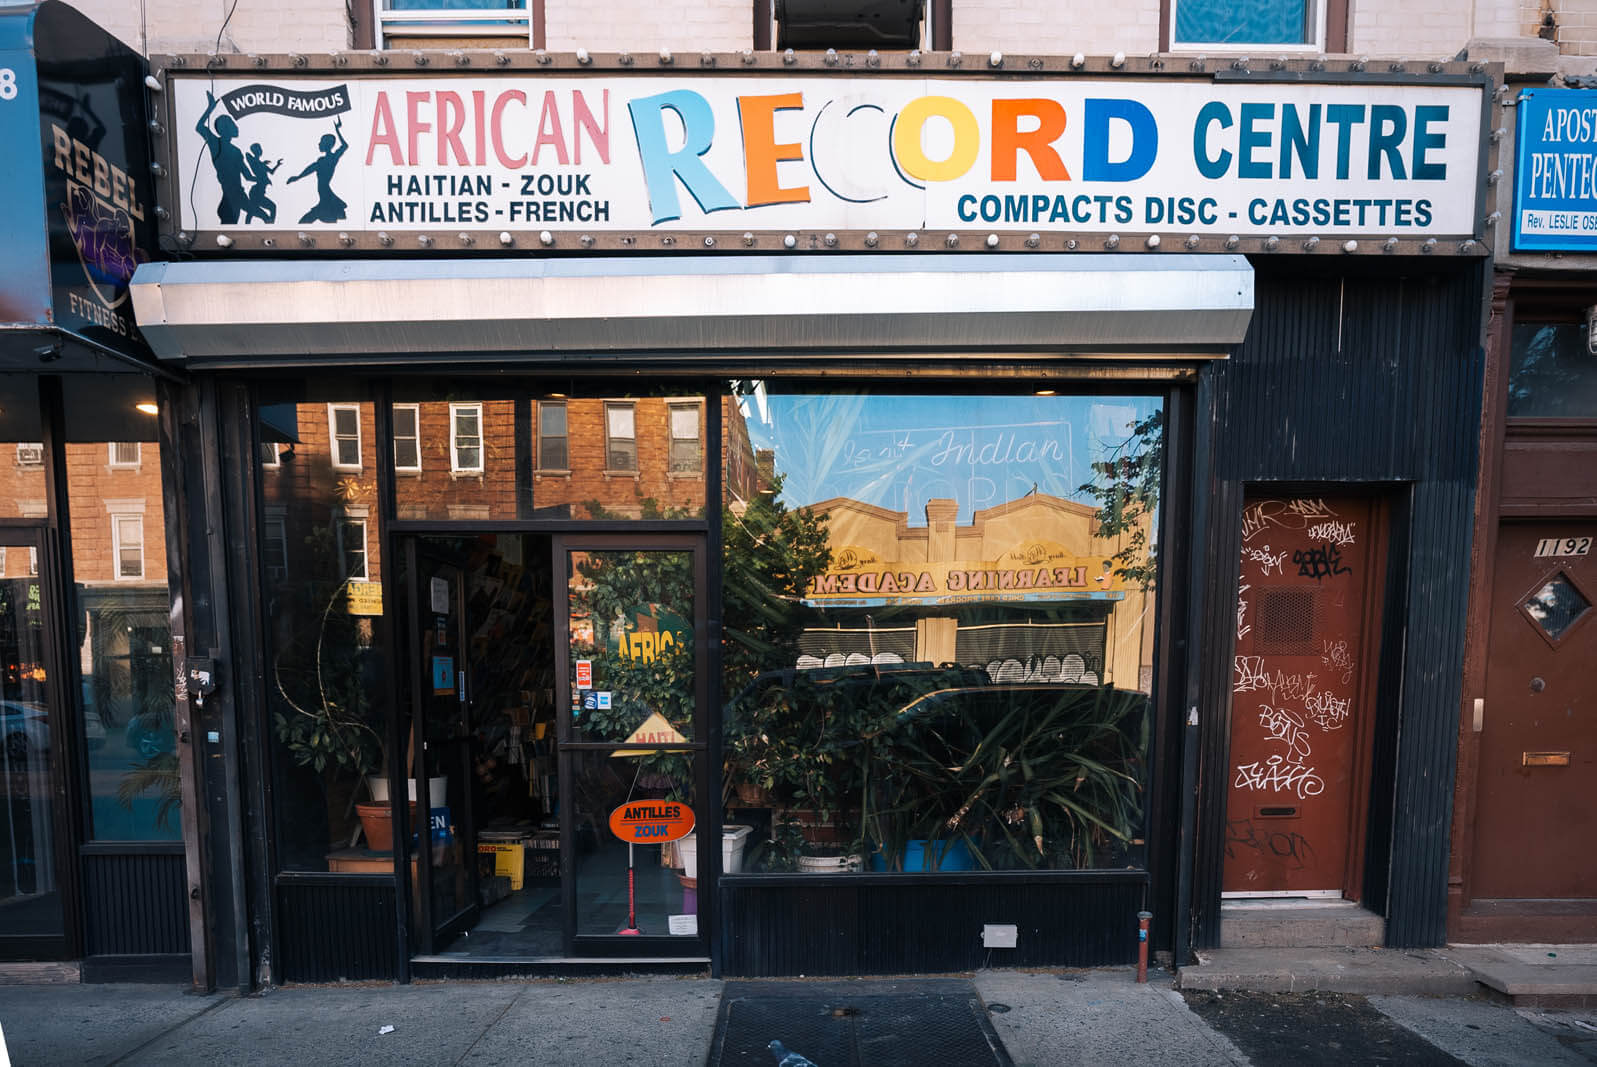 Africans Record Center in Prospect Lefferts Gardens Brooklyn